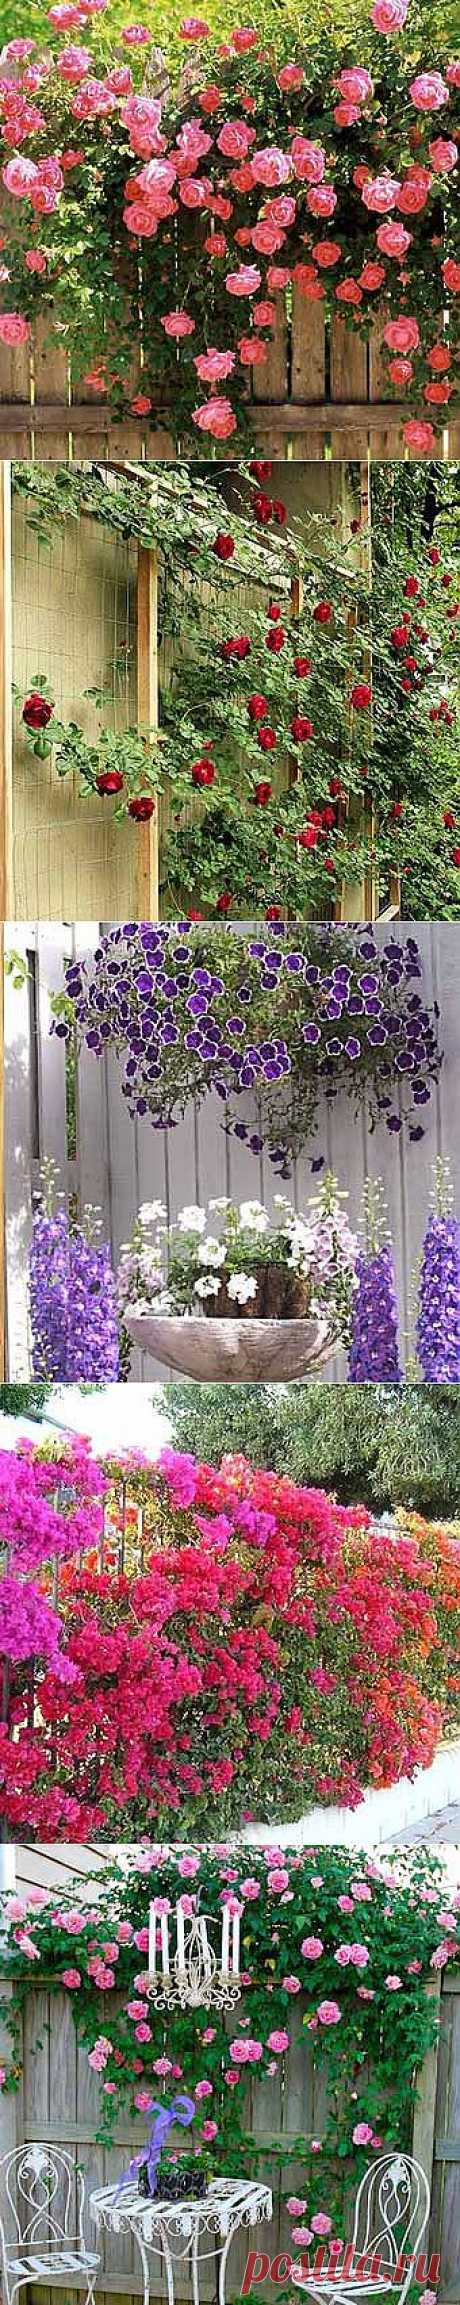 Photo of fences: 35 fences with flowers - Giving by the Hands